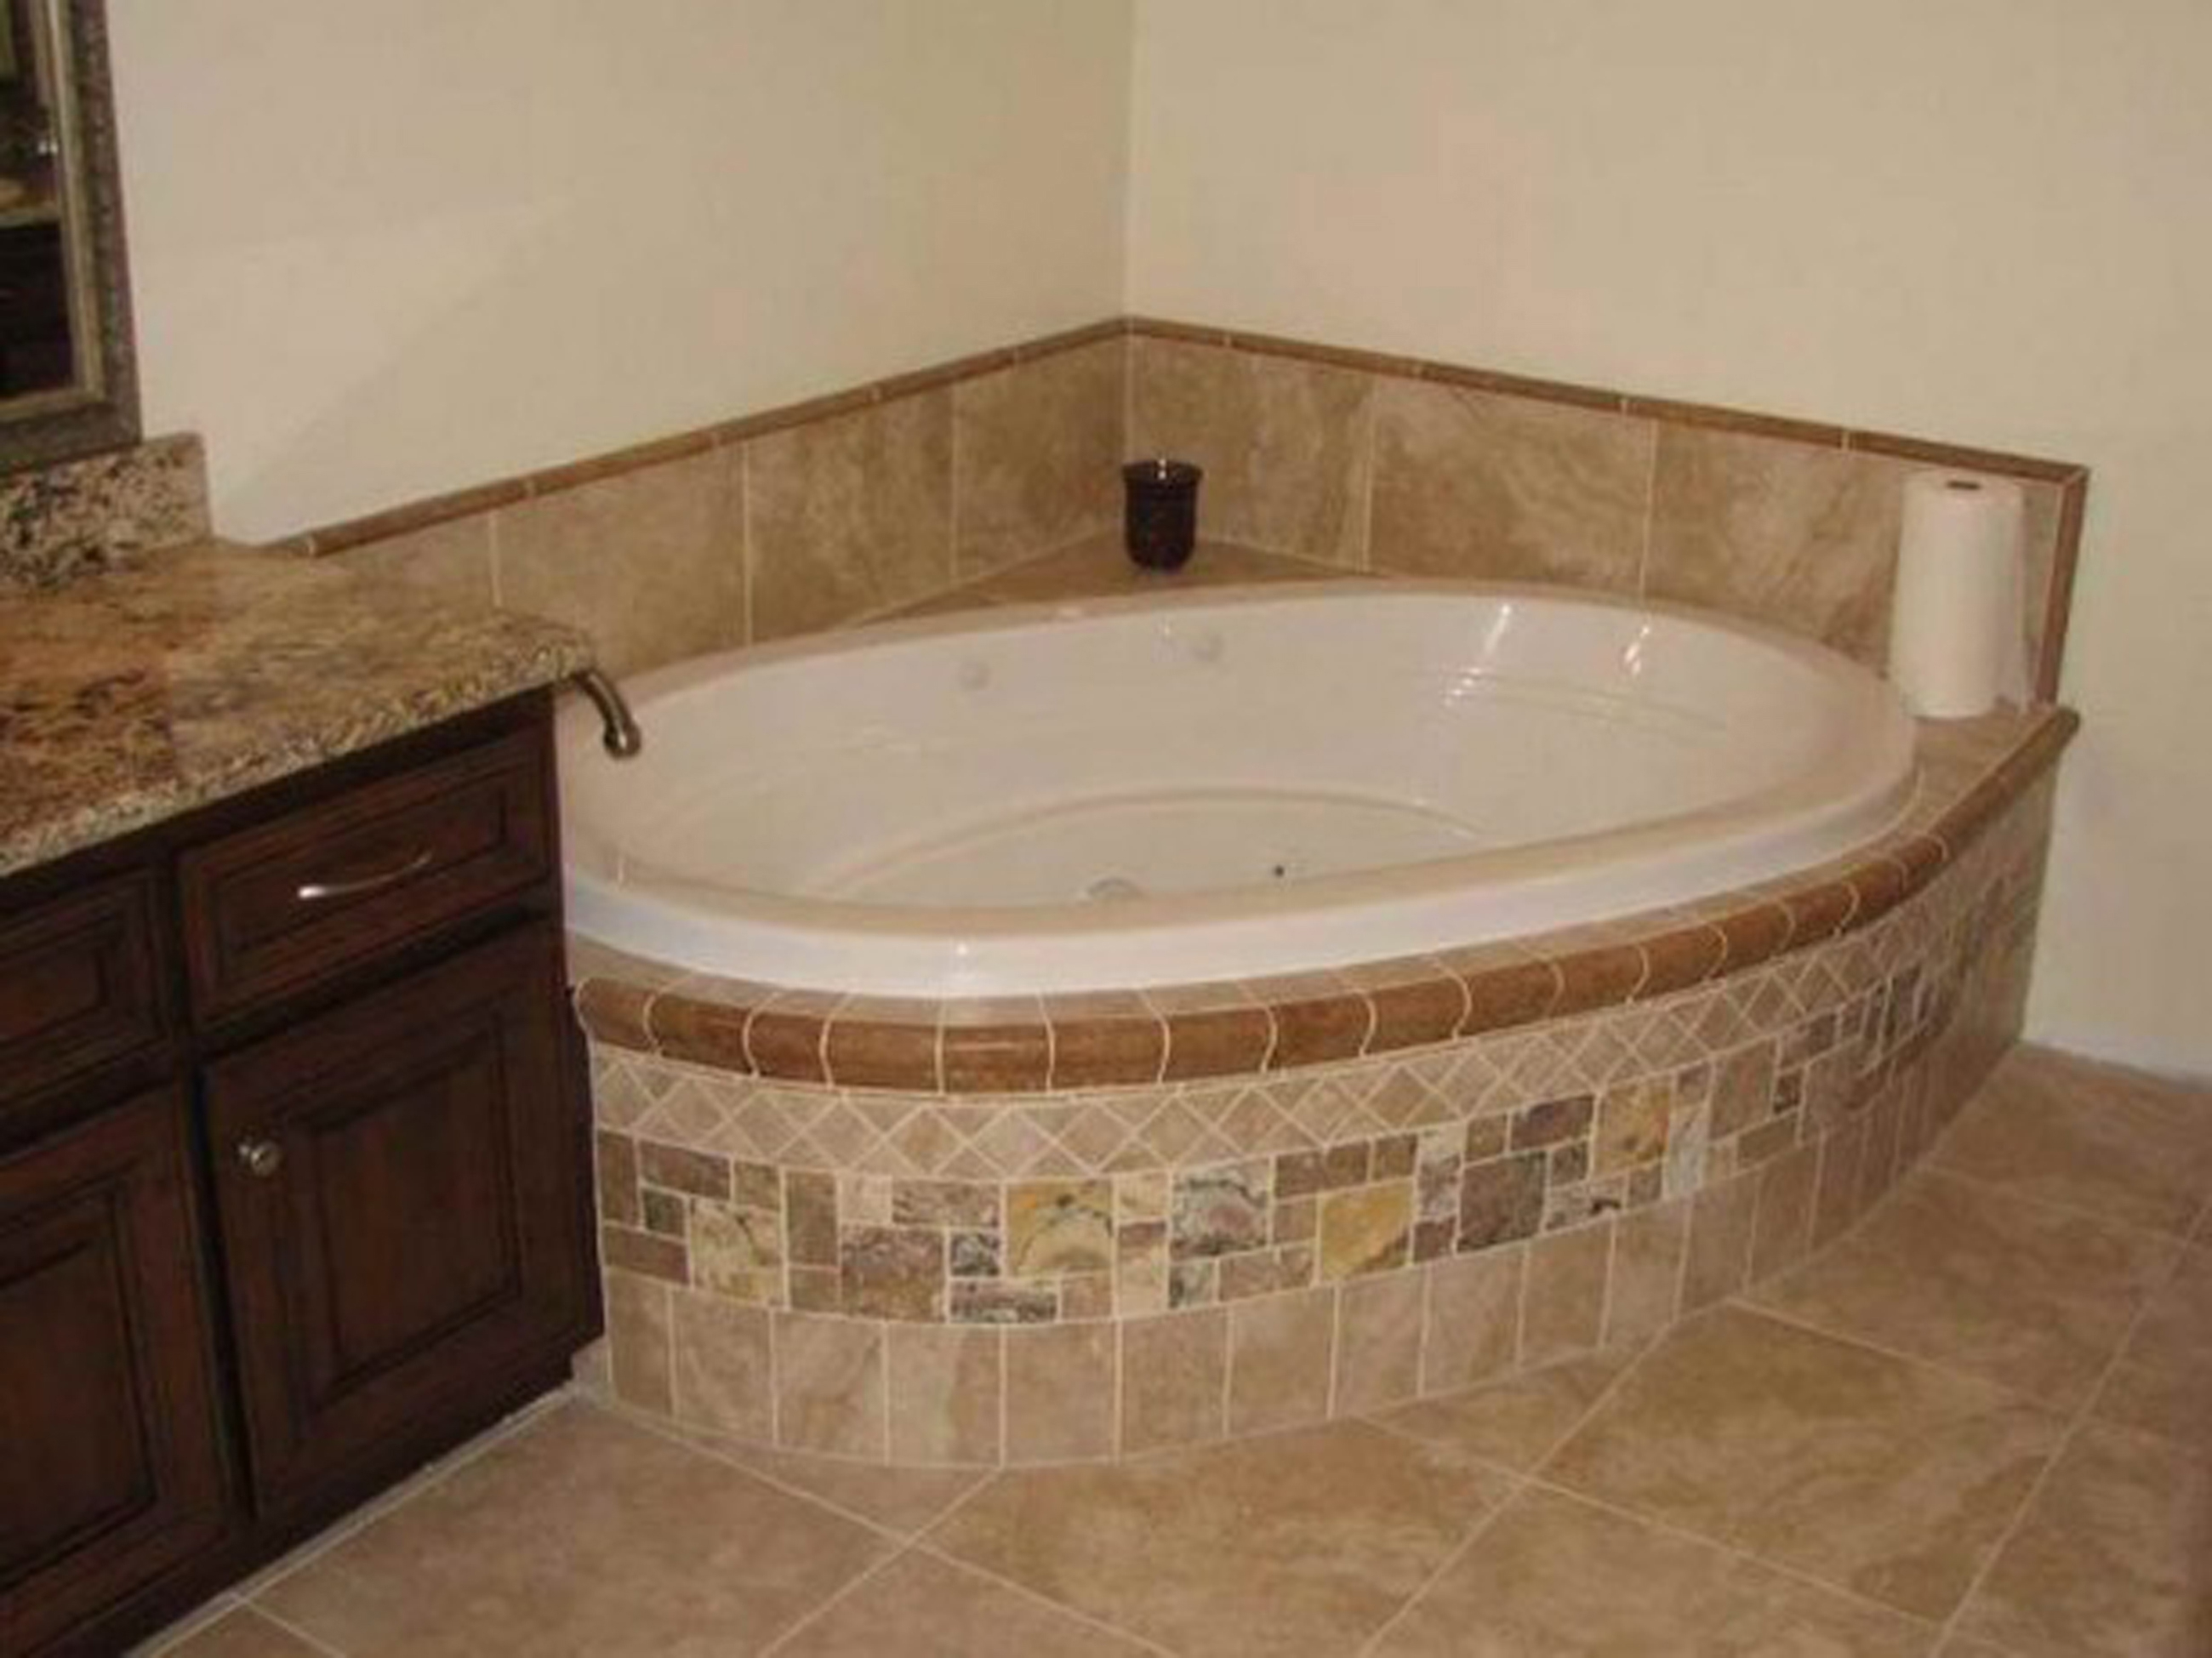 Simple Bathroom Nice Oval White Corner Bathtub Design With Chocolate Vanity With Brown Countertop And Brown Floor Tile And Also White Wall Stunning Ideas For Corner Bathtub Designs (View 4 of 23)